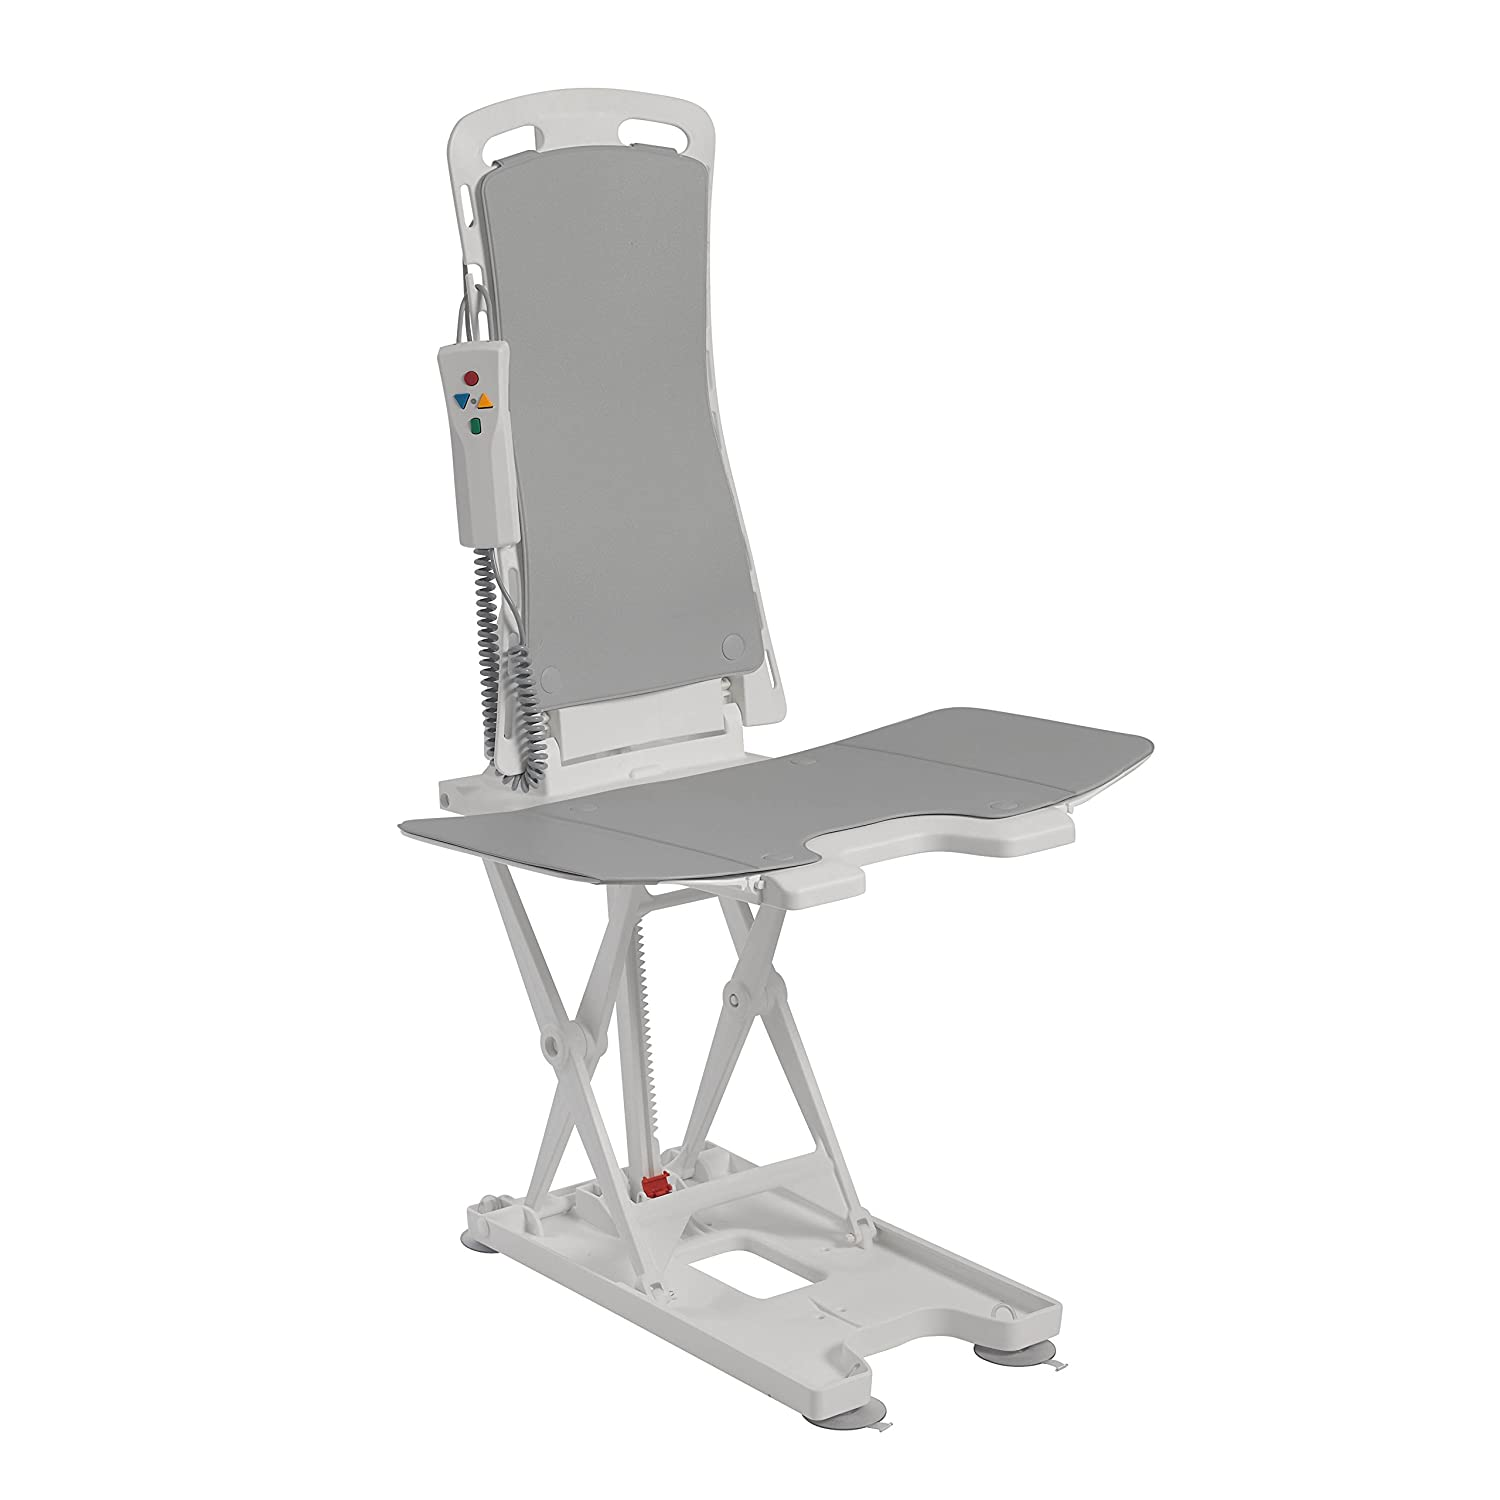 Amazon.com: Drive Medical Bellavita Auto Bath Tub Chair Seat Lift ...